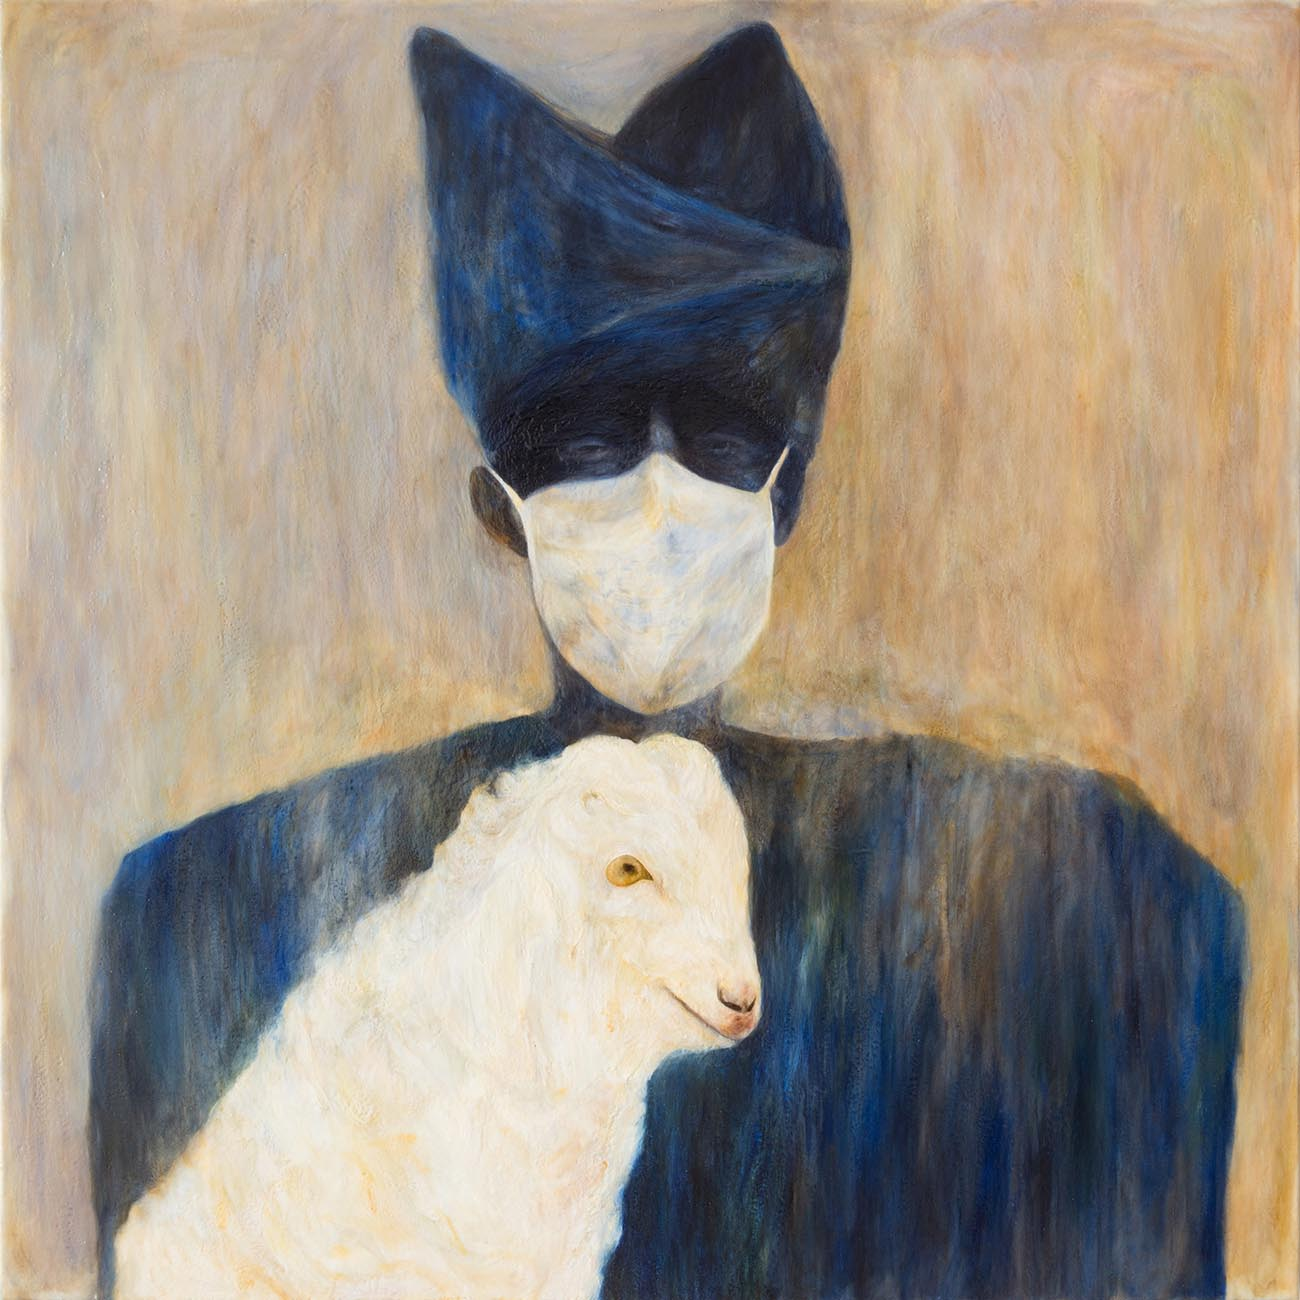 Woman with Goat and Surgical Mask